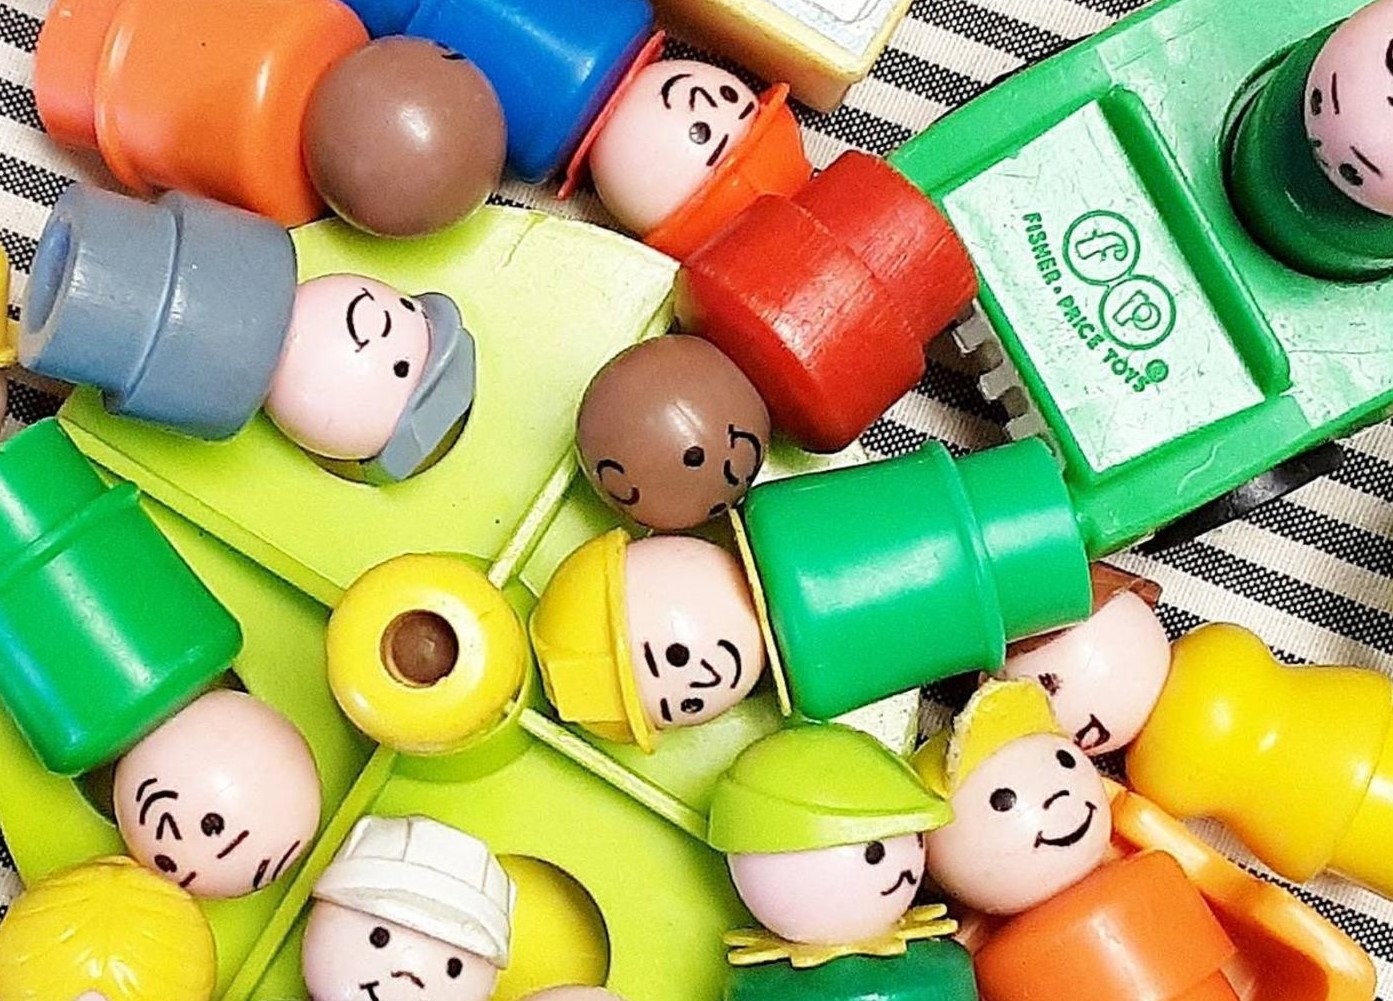 Fisher-Price Little People; nurture client relationships